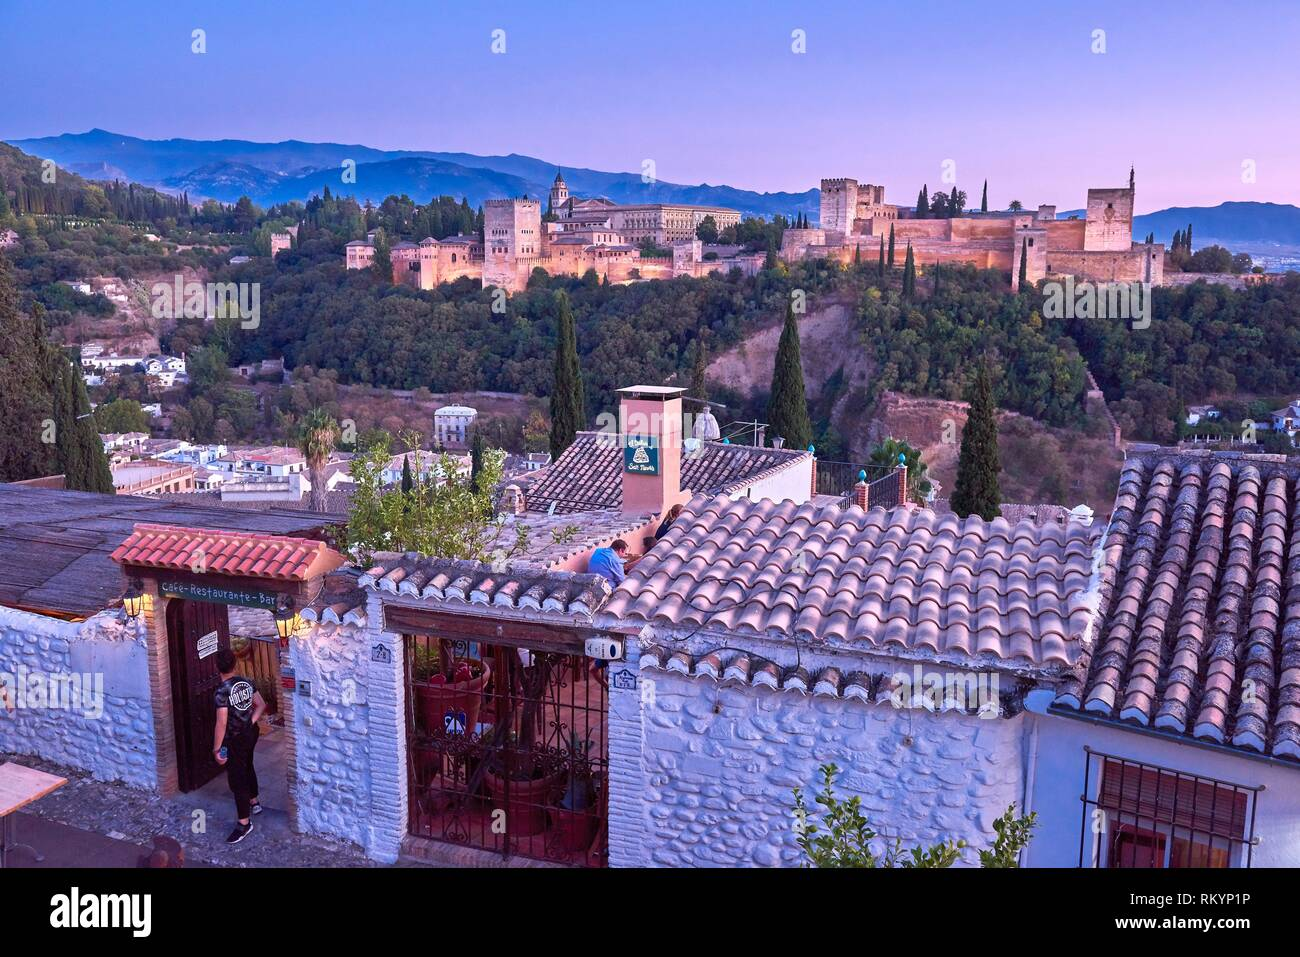 Alhambra, UNESCO World Heritage Site, Albaicin, Sierra Nevada and la Alhambra at Sunset, Granada, Andalusia, Spain. Stock Photo